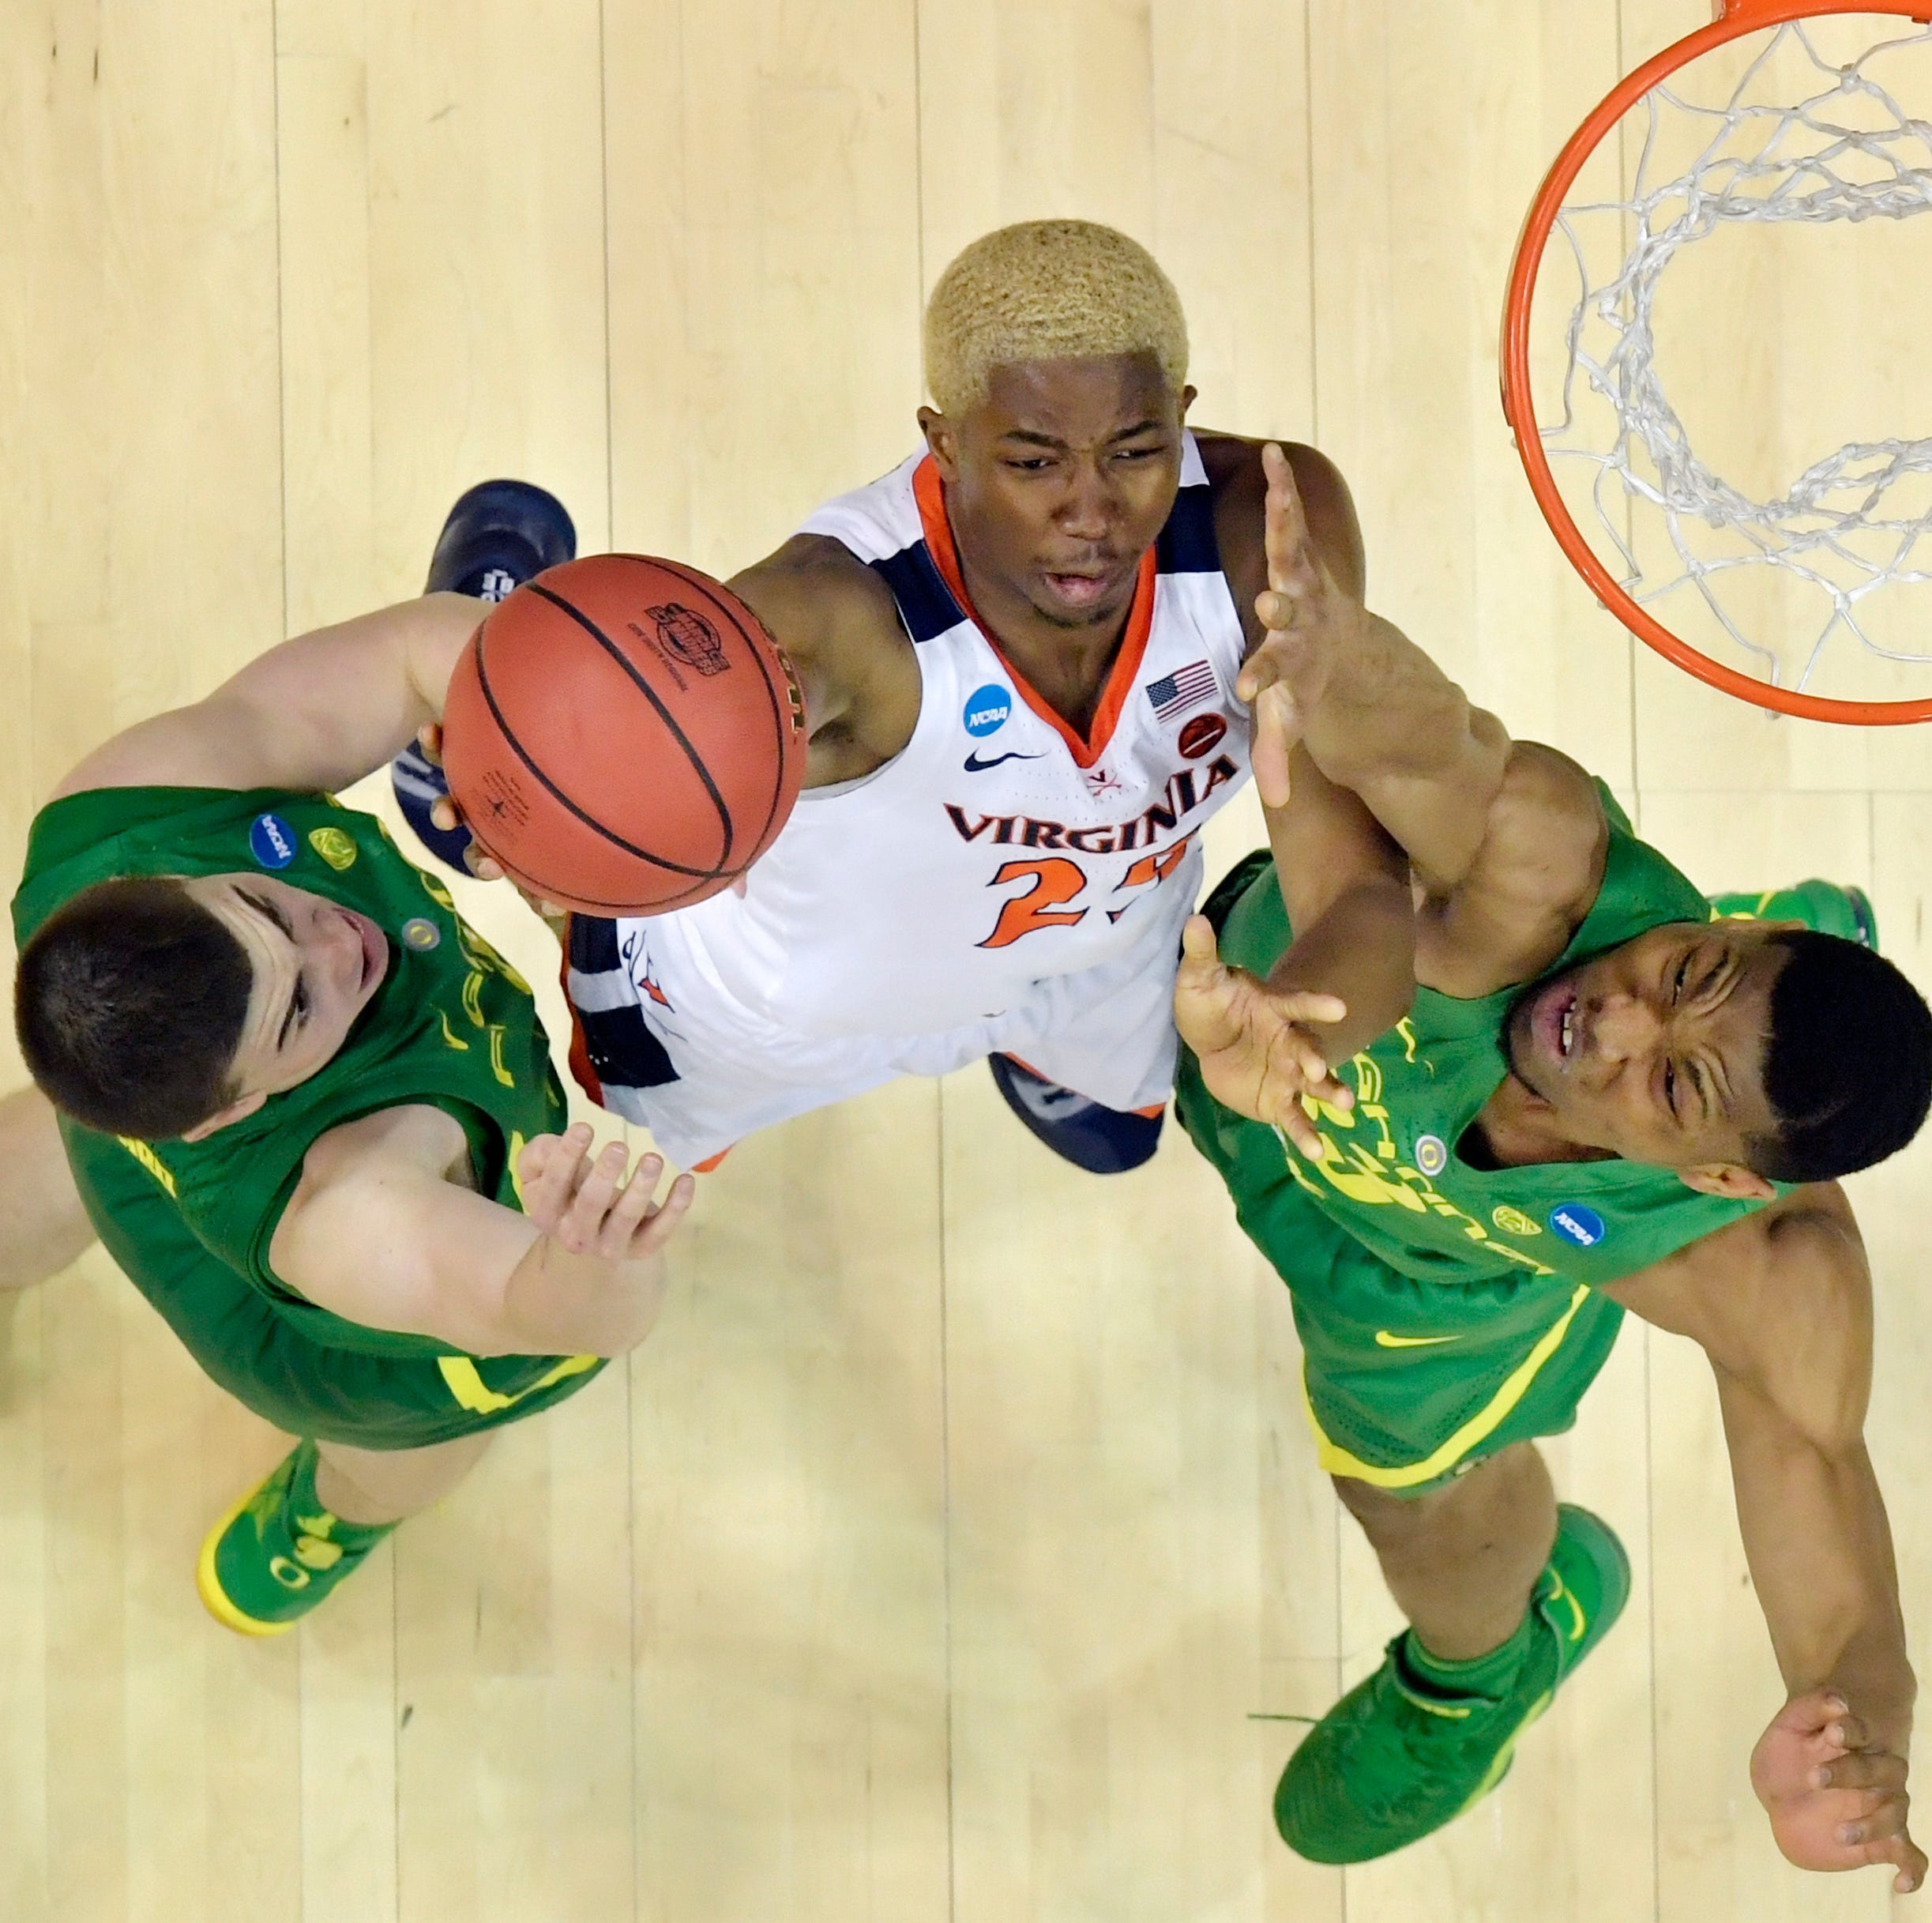 Virginia's suffocating defense outlasts Oregon in Sweet 16